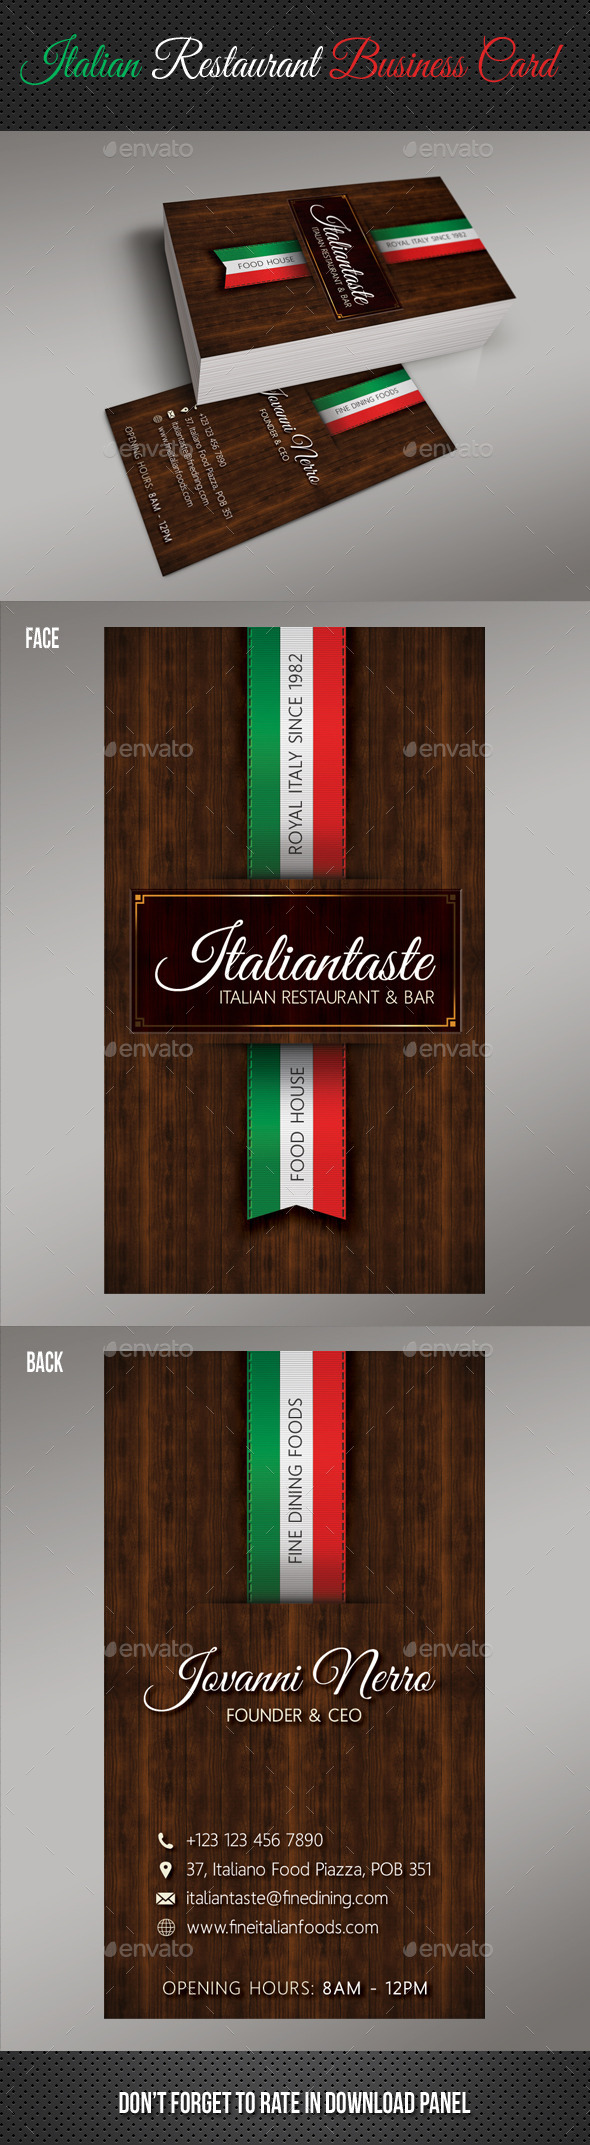 Italian restaurant business card by rapidgraf graphicriver italian restaurant business card industry specific business cards colourmoves